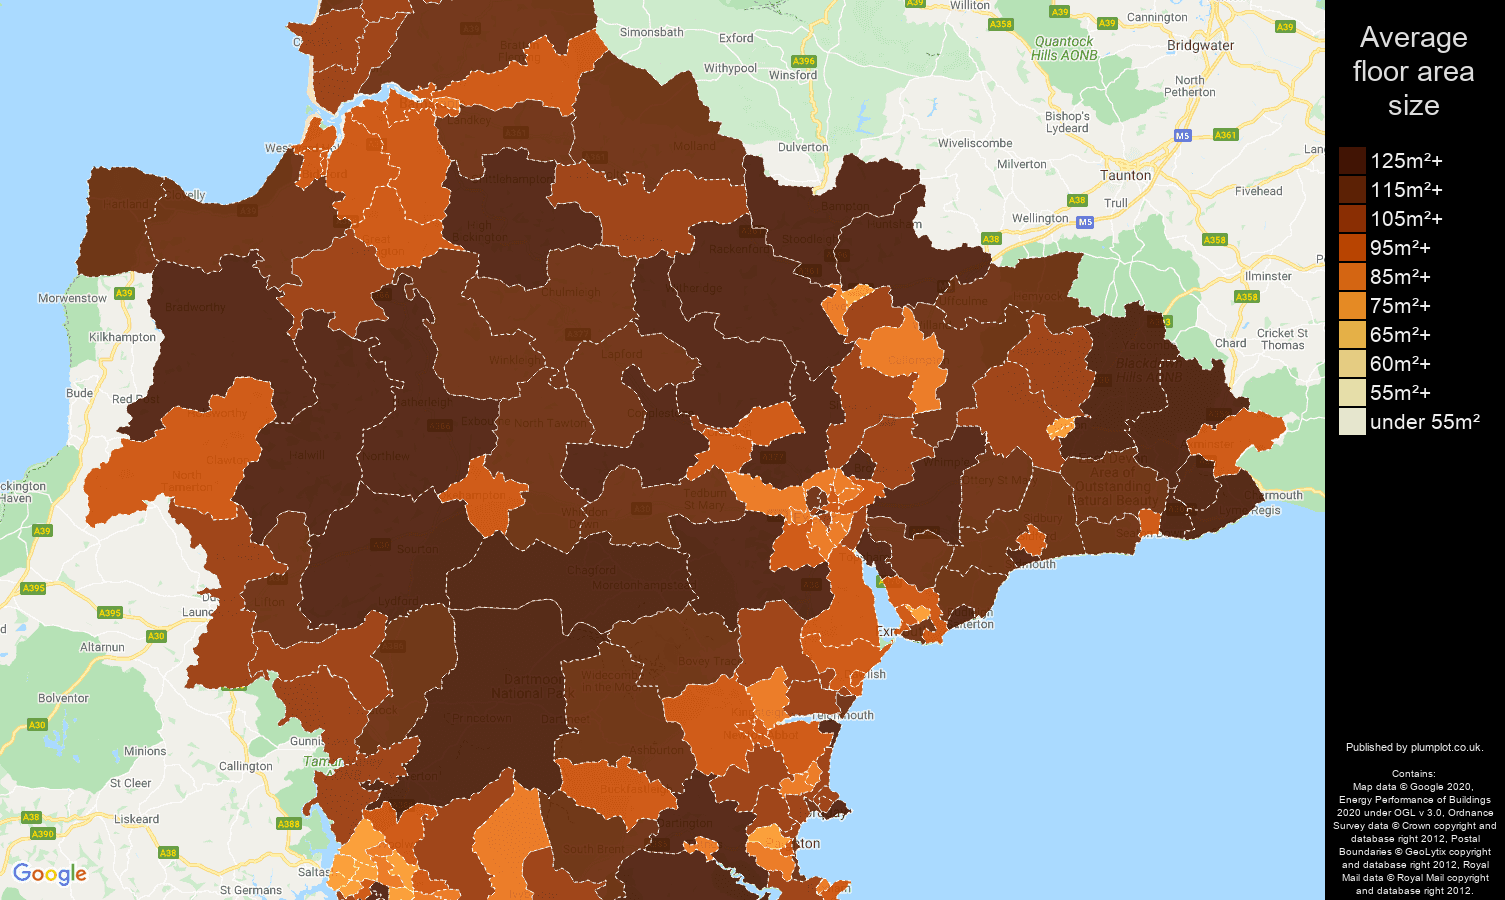 Devon map of average floor area size of houses